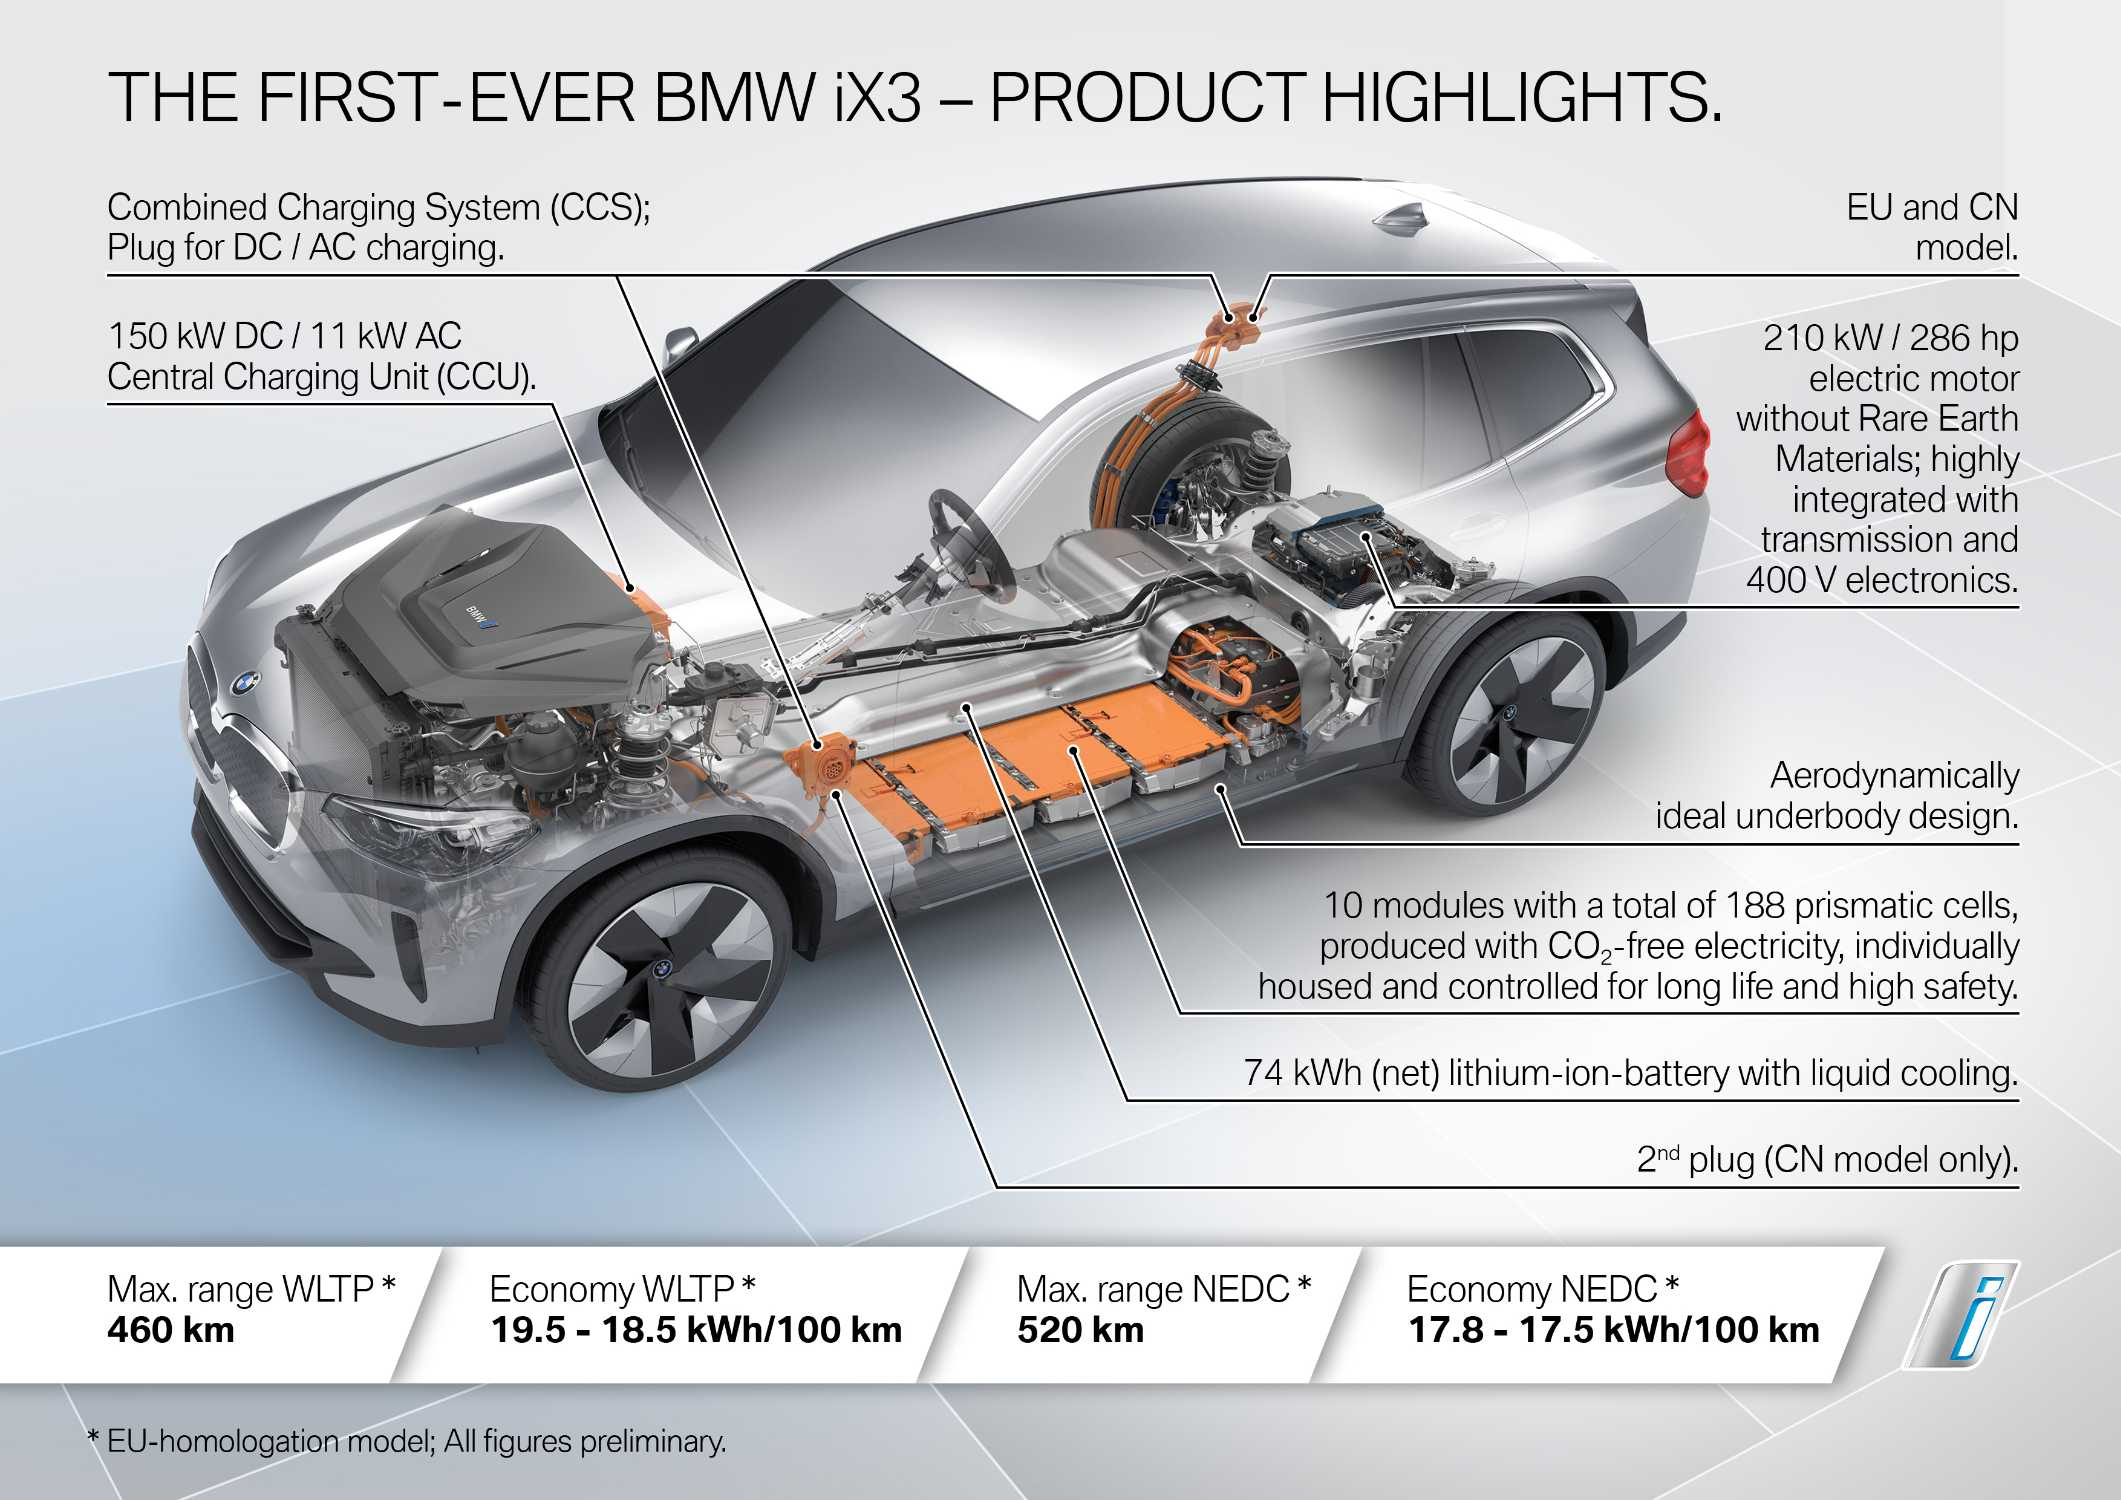 The first-ever BMW iX3 (7/2020)